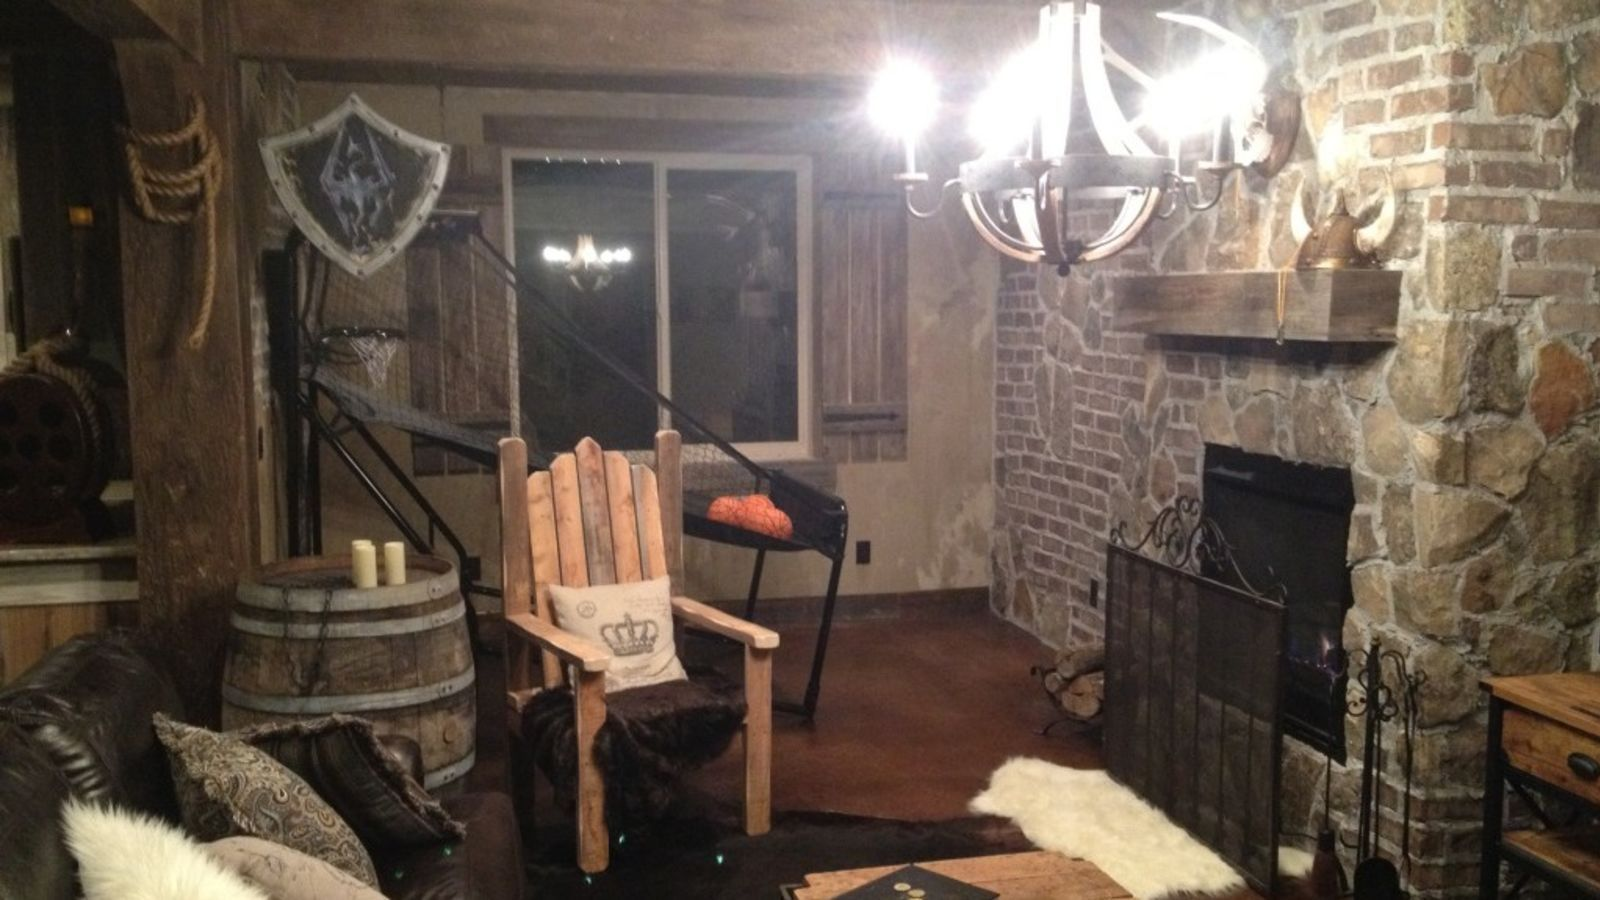 Skyrim themed basement also this comic book artist   is straight out of rh pinterest